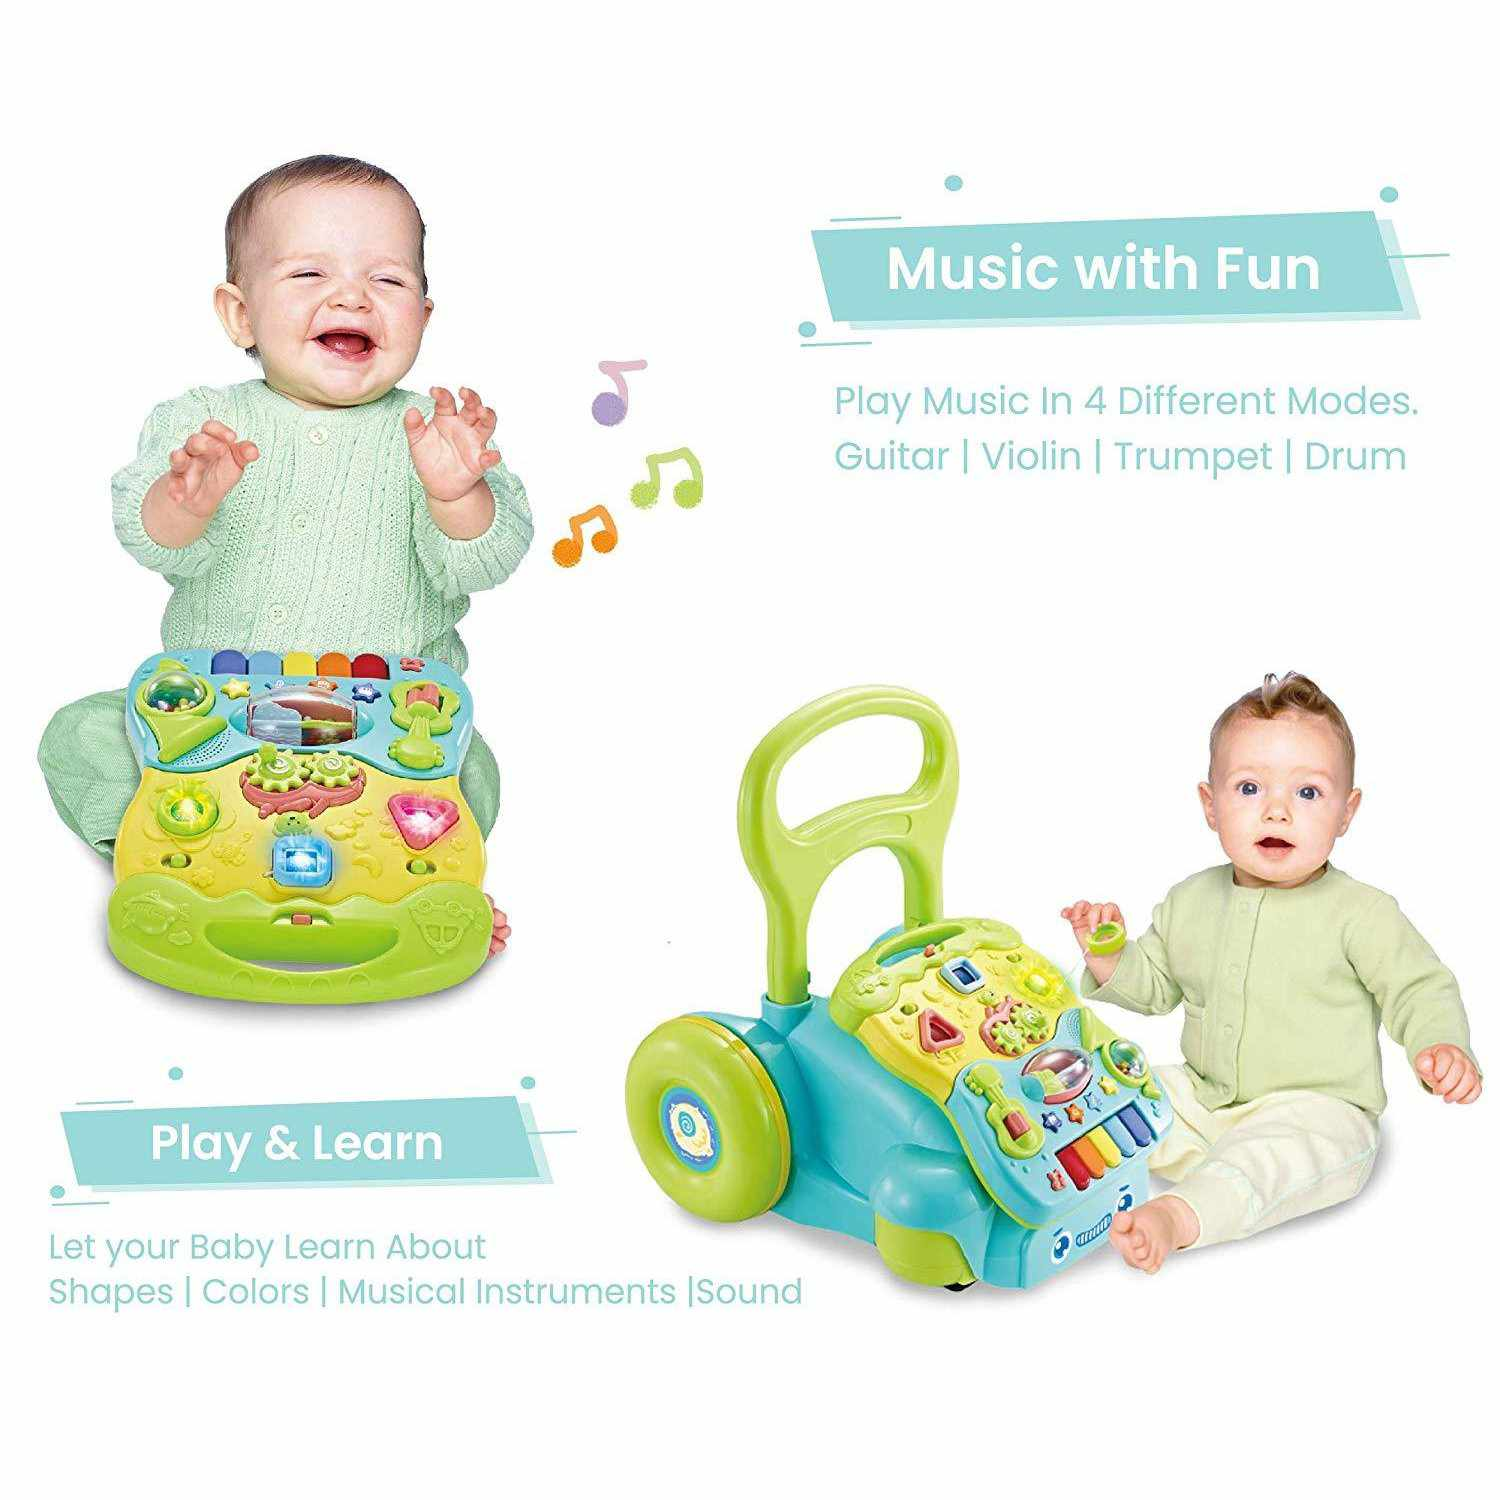 Orapple Toys by R for Rabbit - 5 in 1 Learning Push Baby Walker